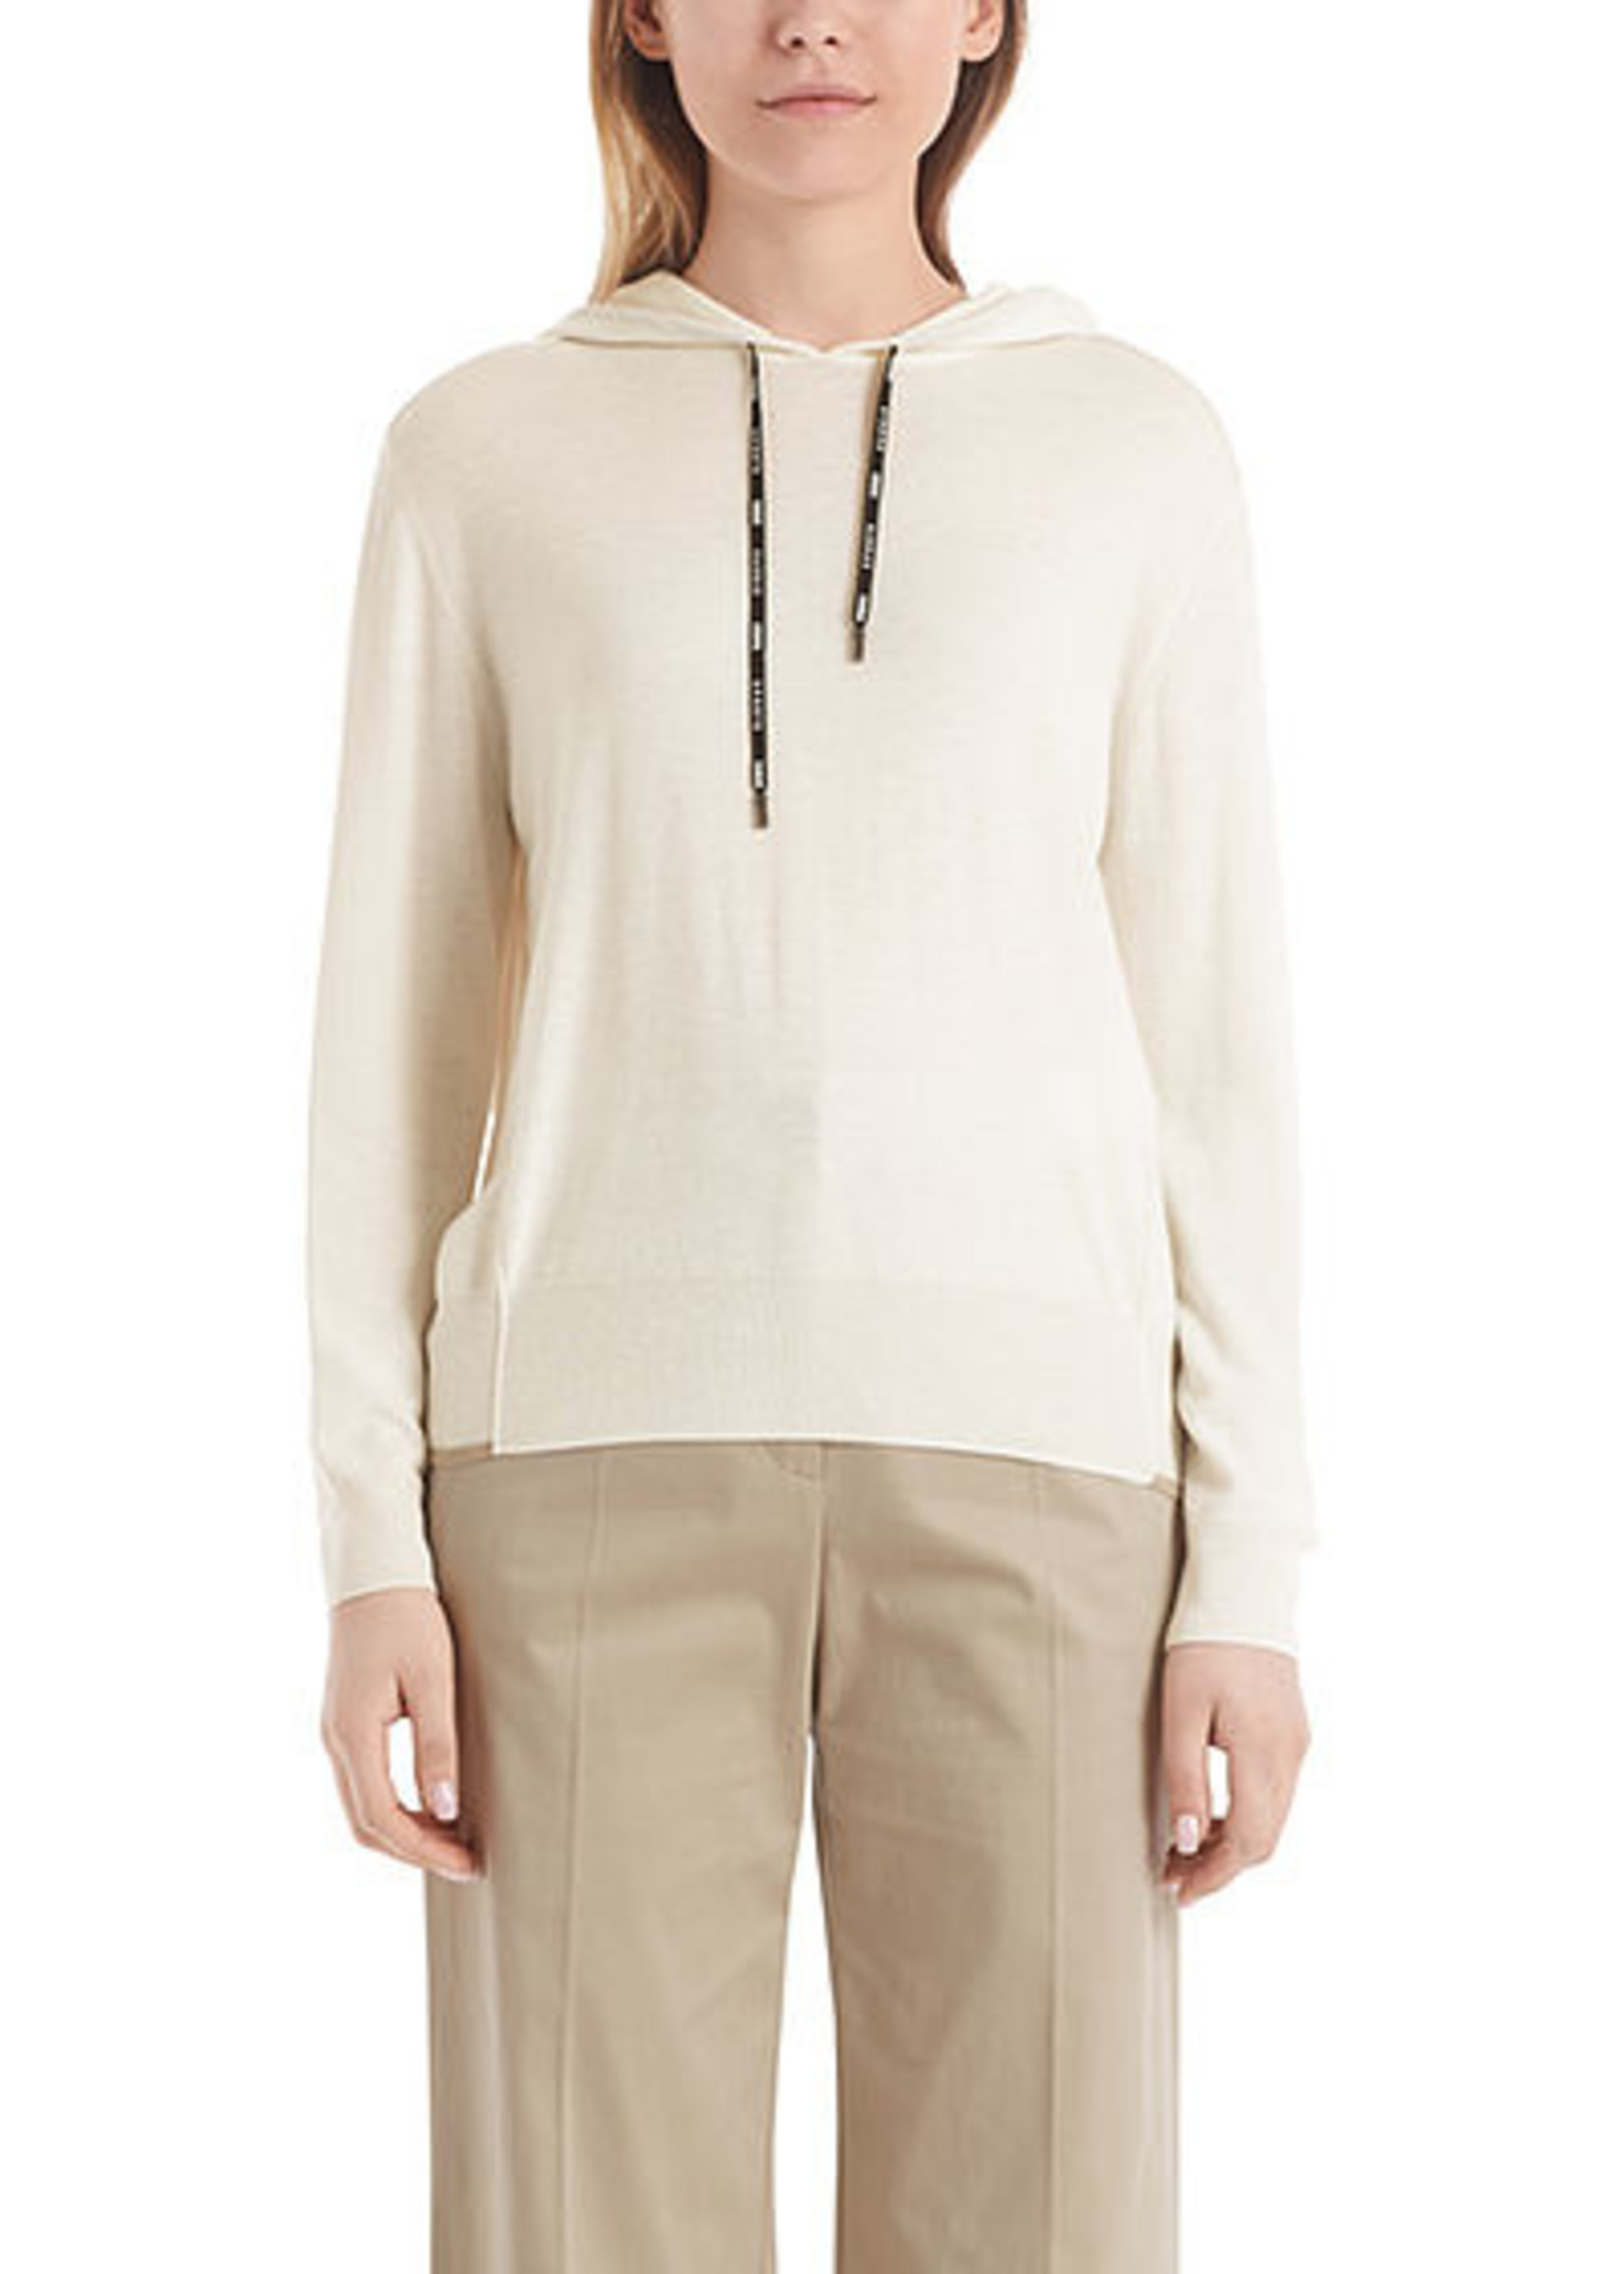 Marccain Sports Sweater RS 41.06 M80 off-white